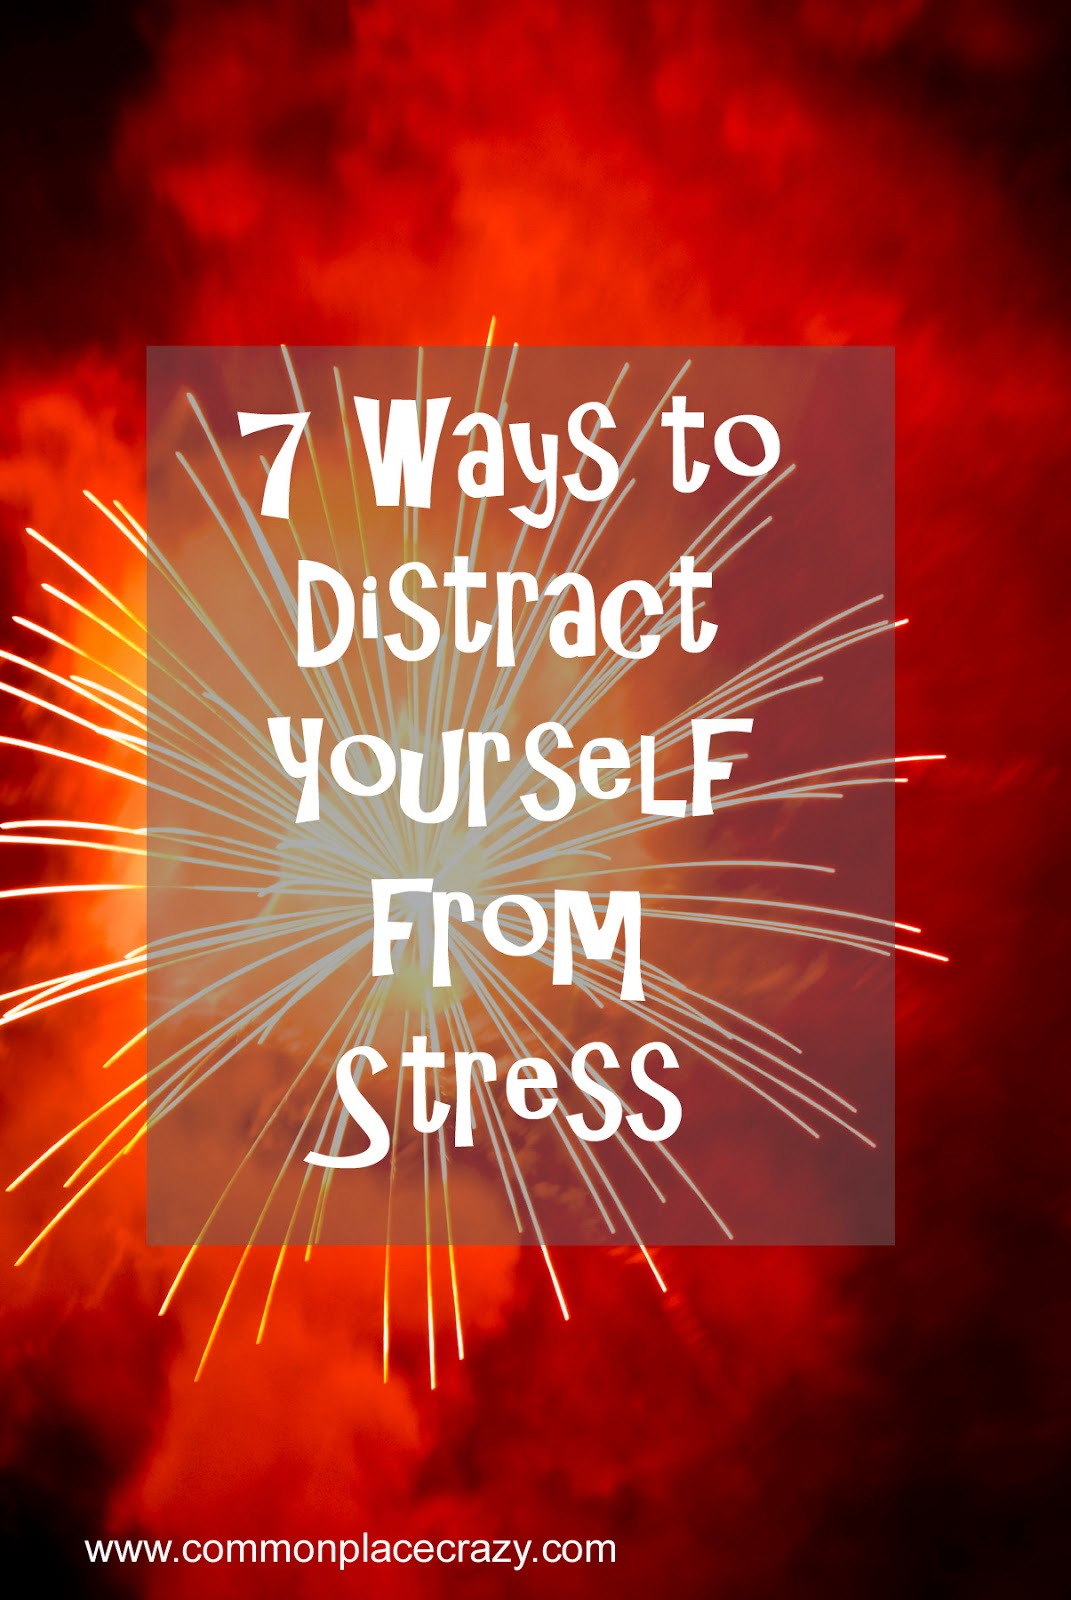 7 Ways to Distract Yourself from Stress